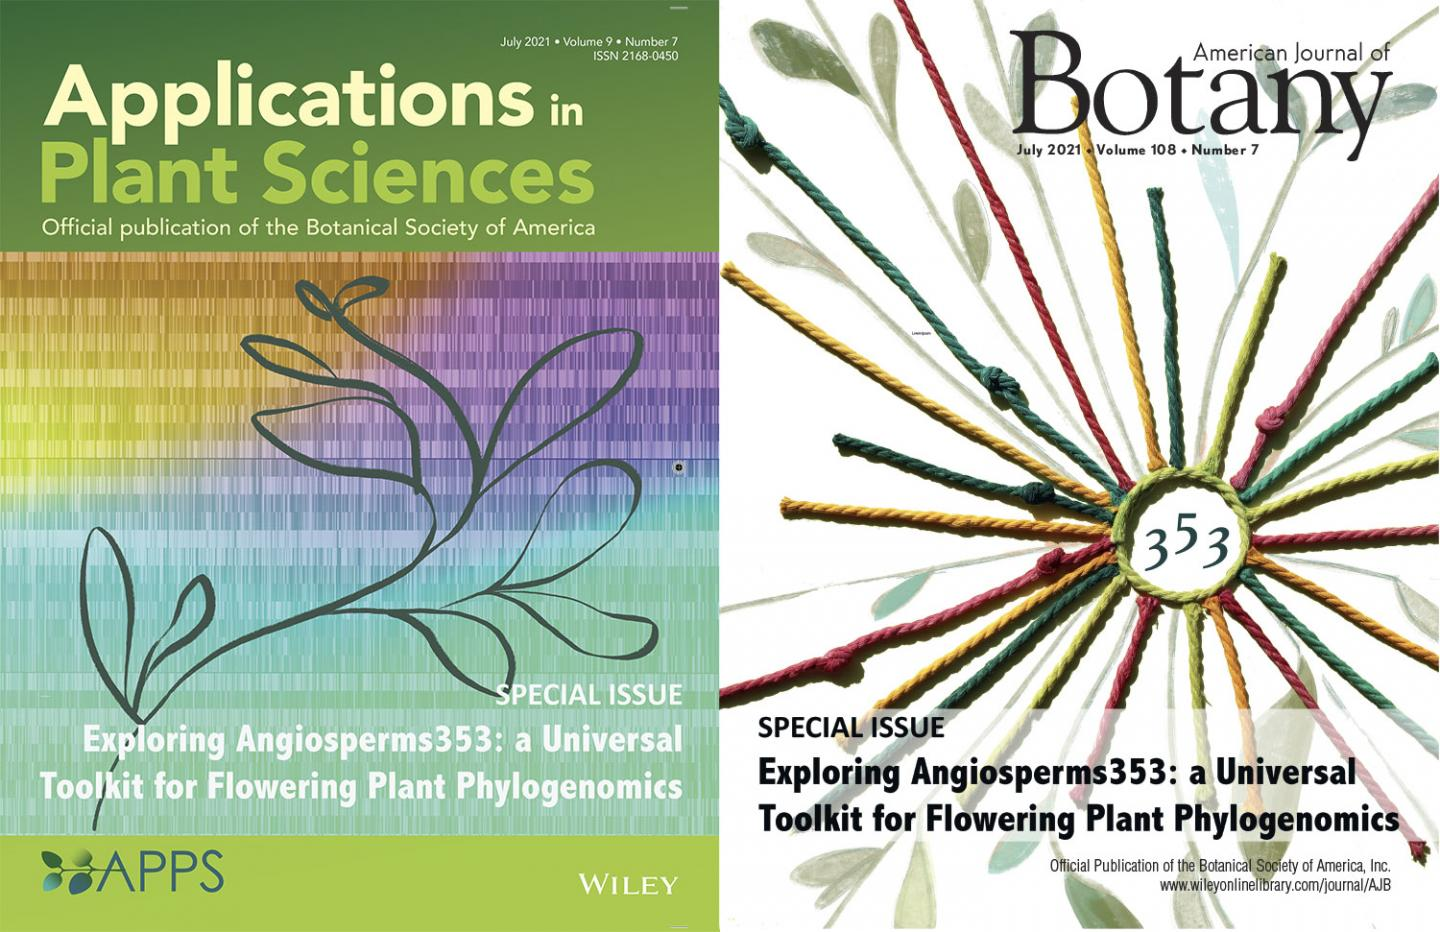 July 2021 covers of AJB and APPS